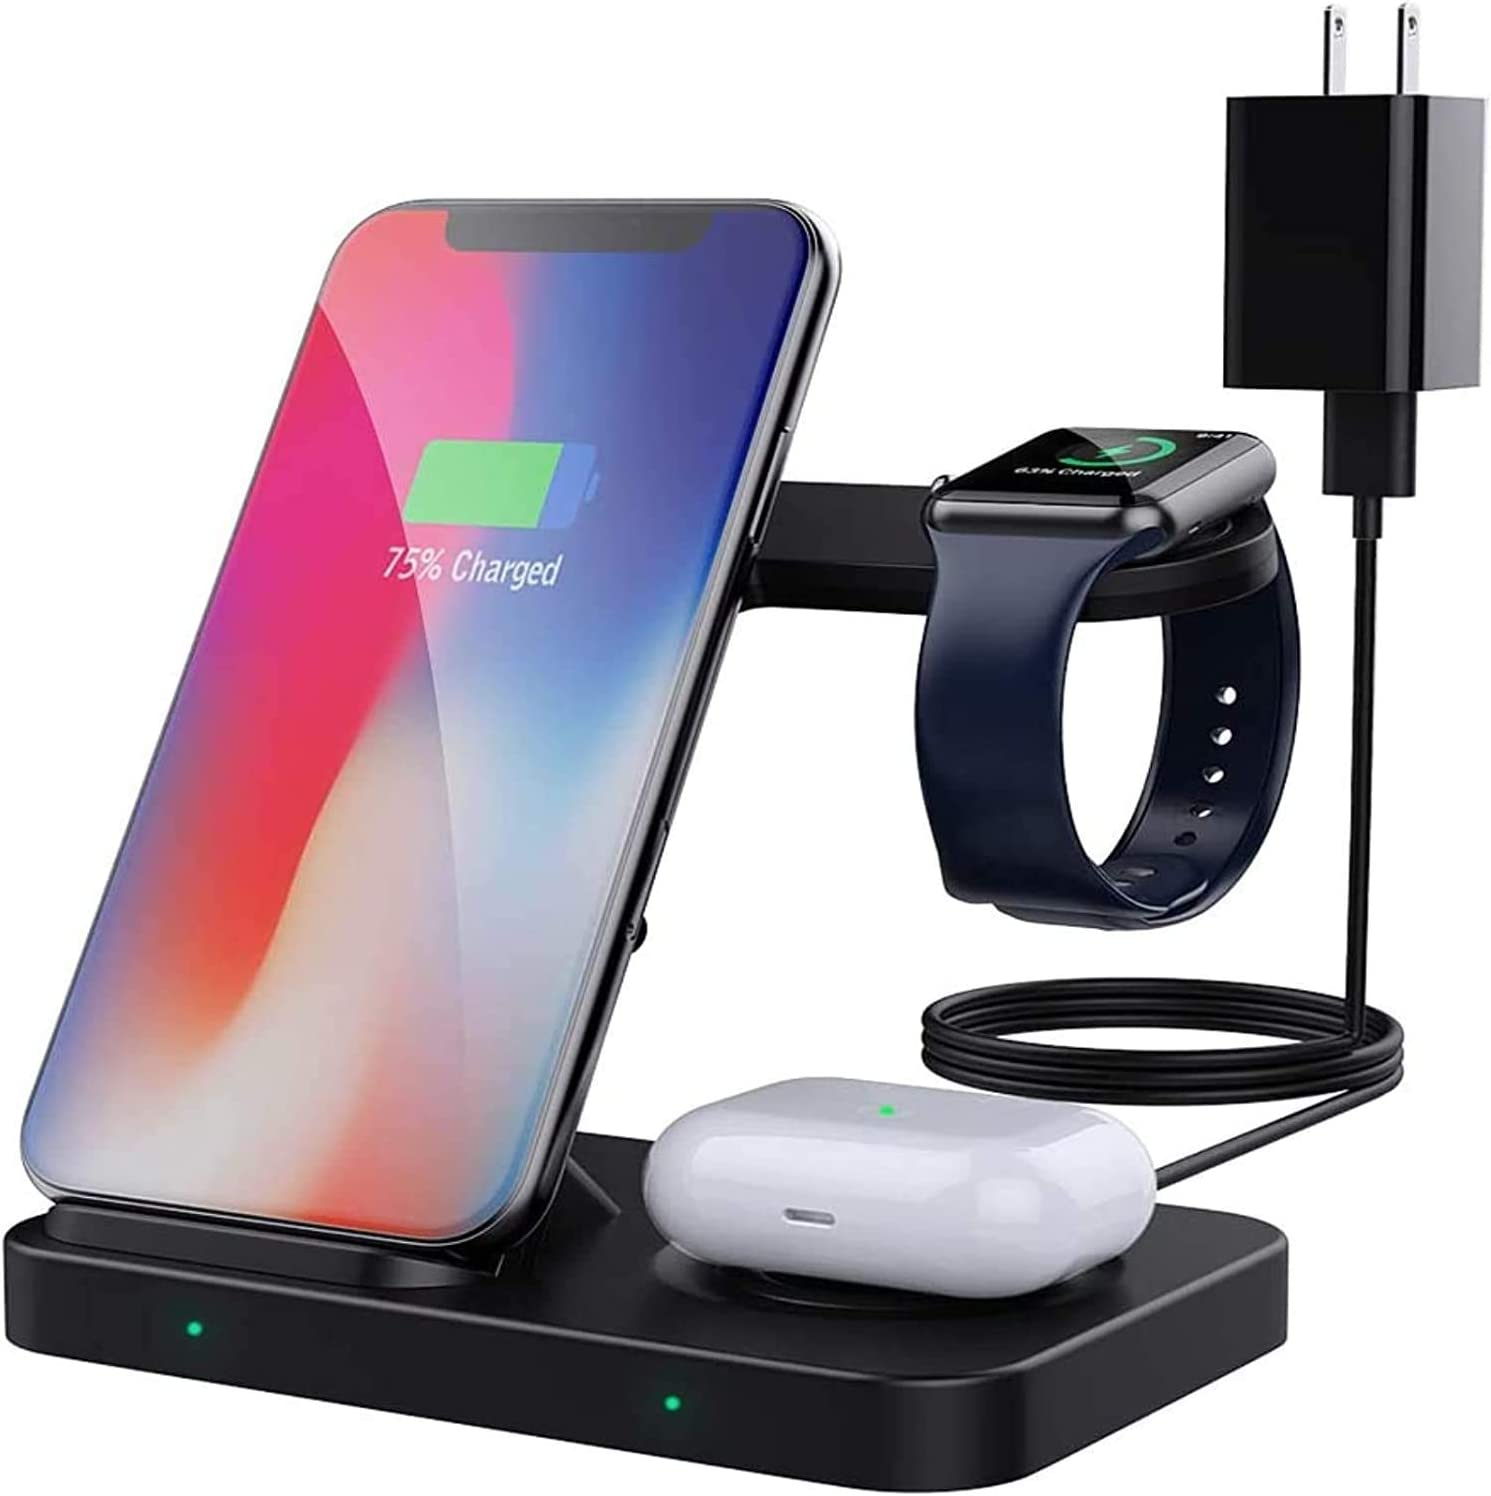 MoKo 3 in 1 Wireless Charger Stand, Qi 10W Dual Fast Charging Dock Station Compatible iPhone 12/12 Pro Max/12 Mini/SE 2020/11/XR/Apple Watch Series SE/6/5/4/3/2/Airpods Pro/2 (with QC3.0 Adapter)